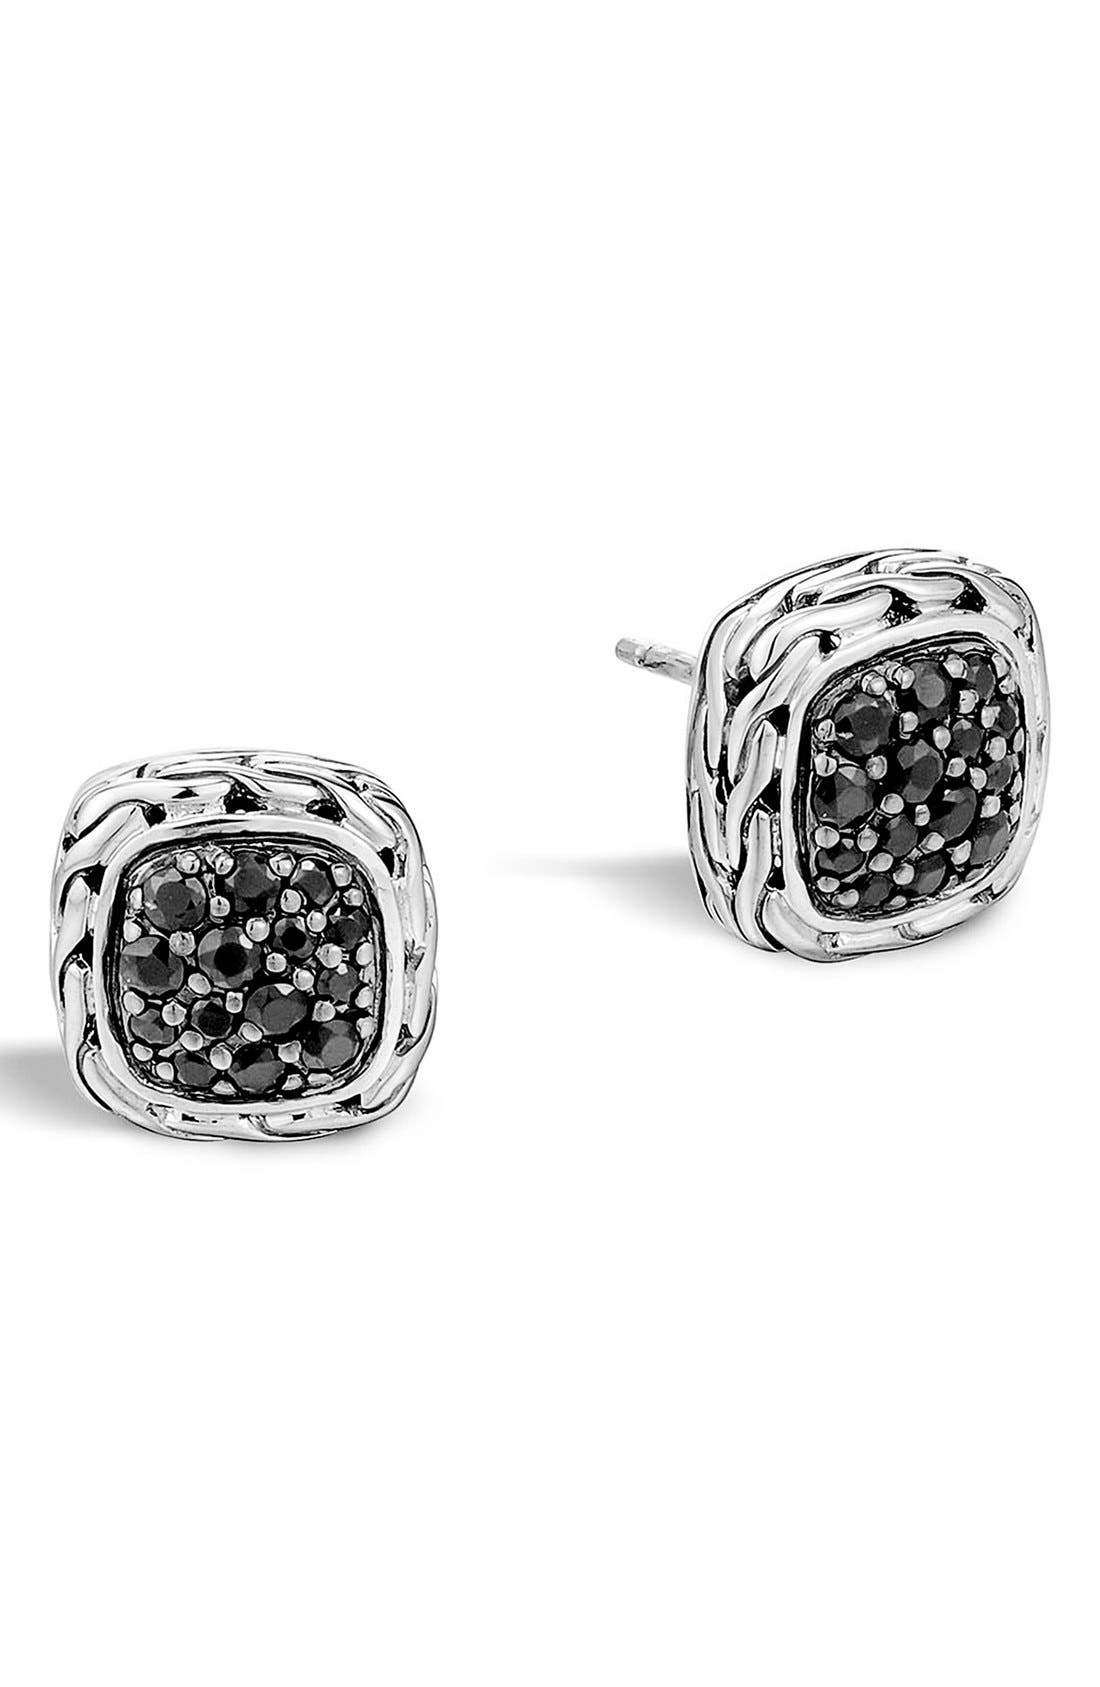 'Classic Chain' Small Square Stud Earrings,                             Main thumbnail 1, color,                             BLACK SAPPHIRE